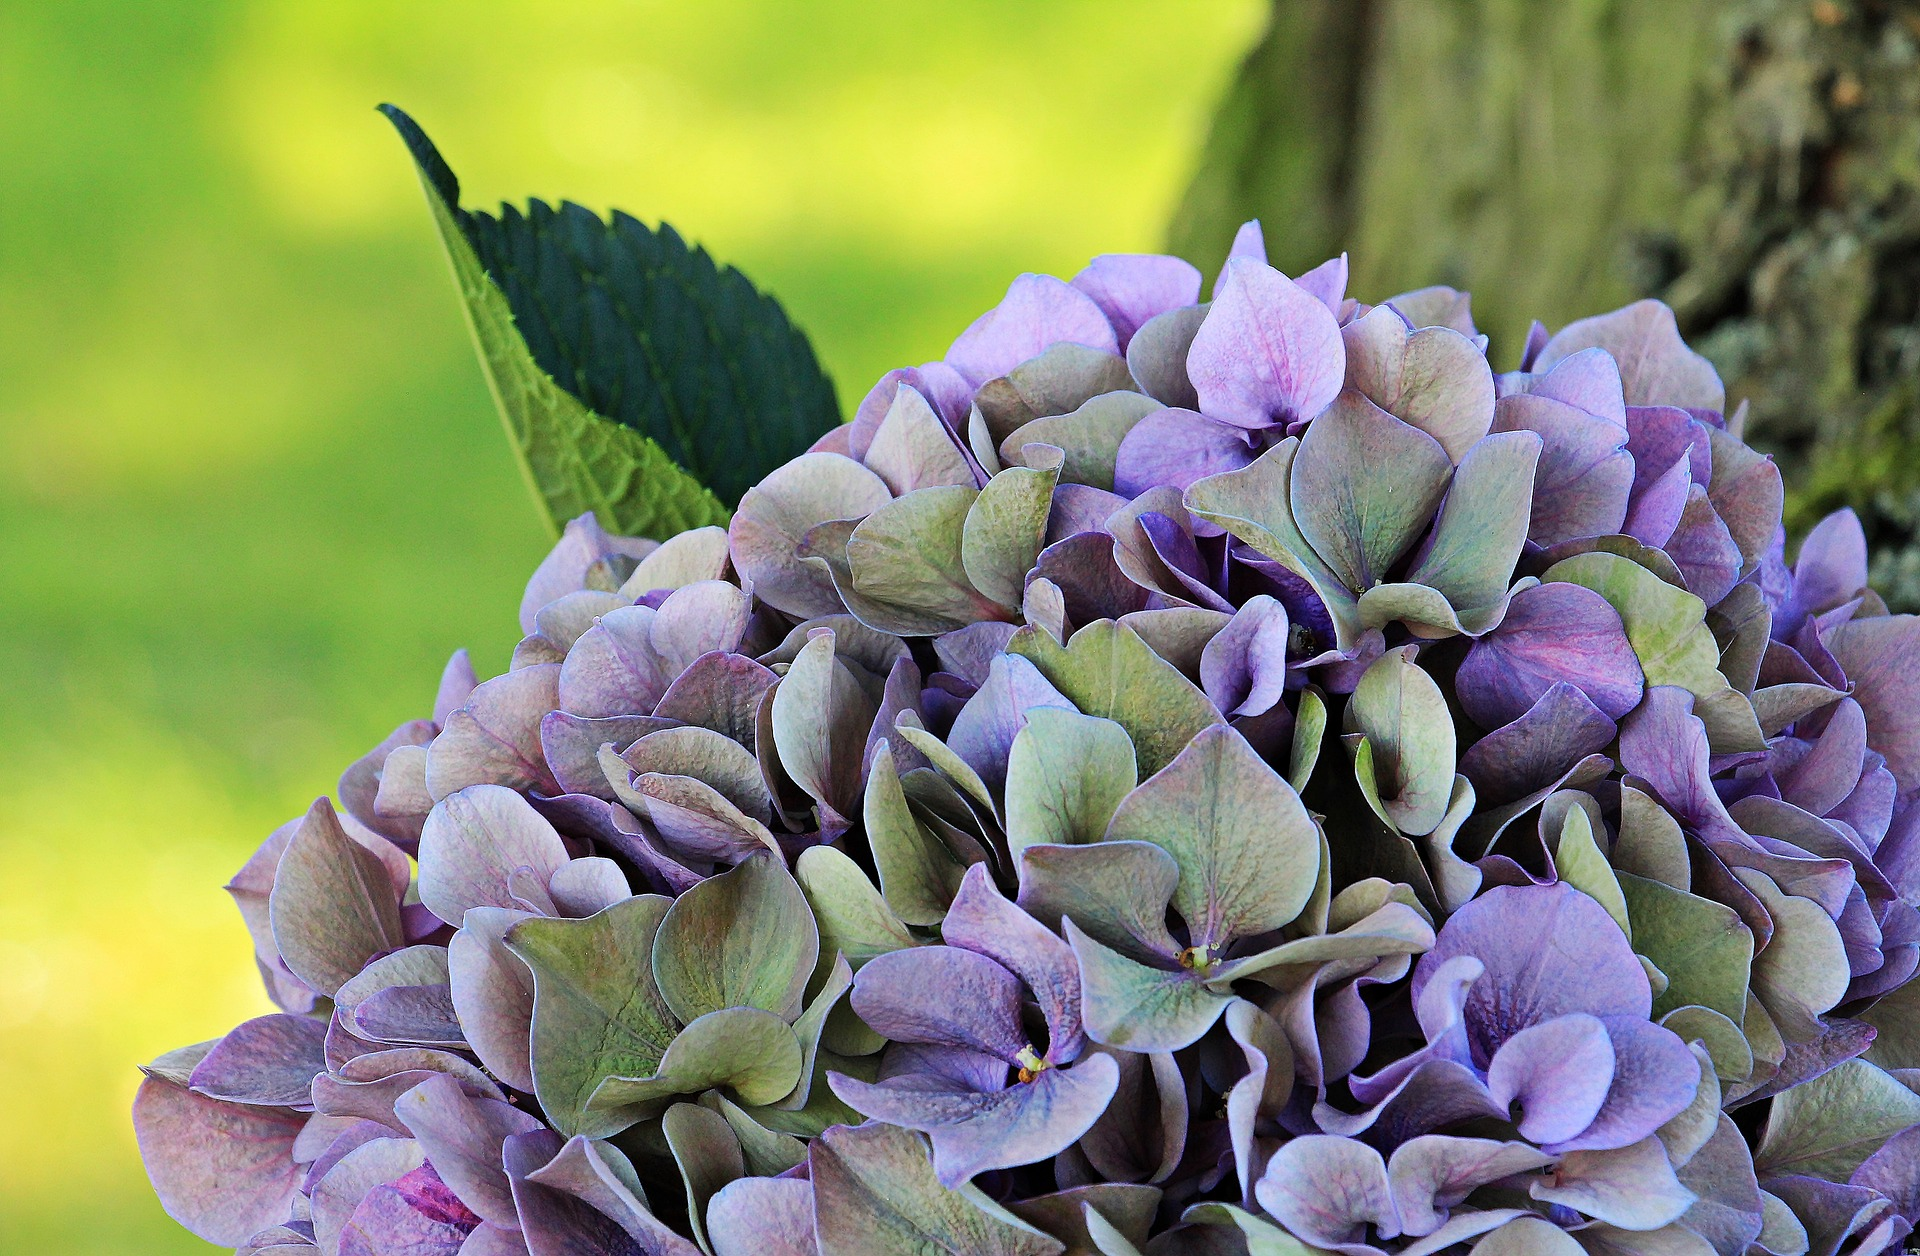 hydrangea-spring-flowers-delivery-london-uk-spring-gifts-delivery-london-florist-blog